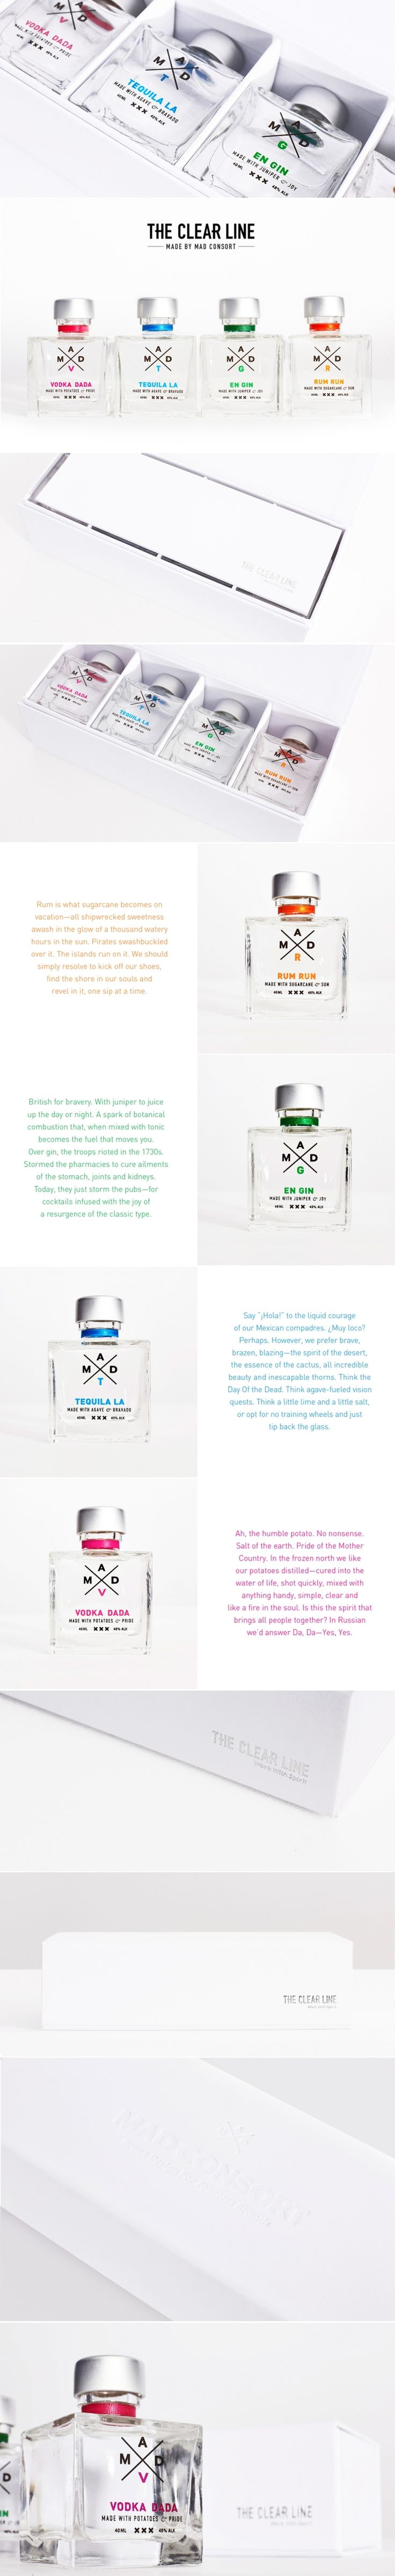 The Clear Line — The Dieline | Packaging & Branding Design & Innovation News